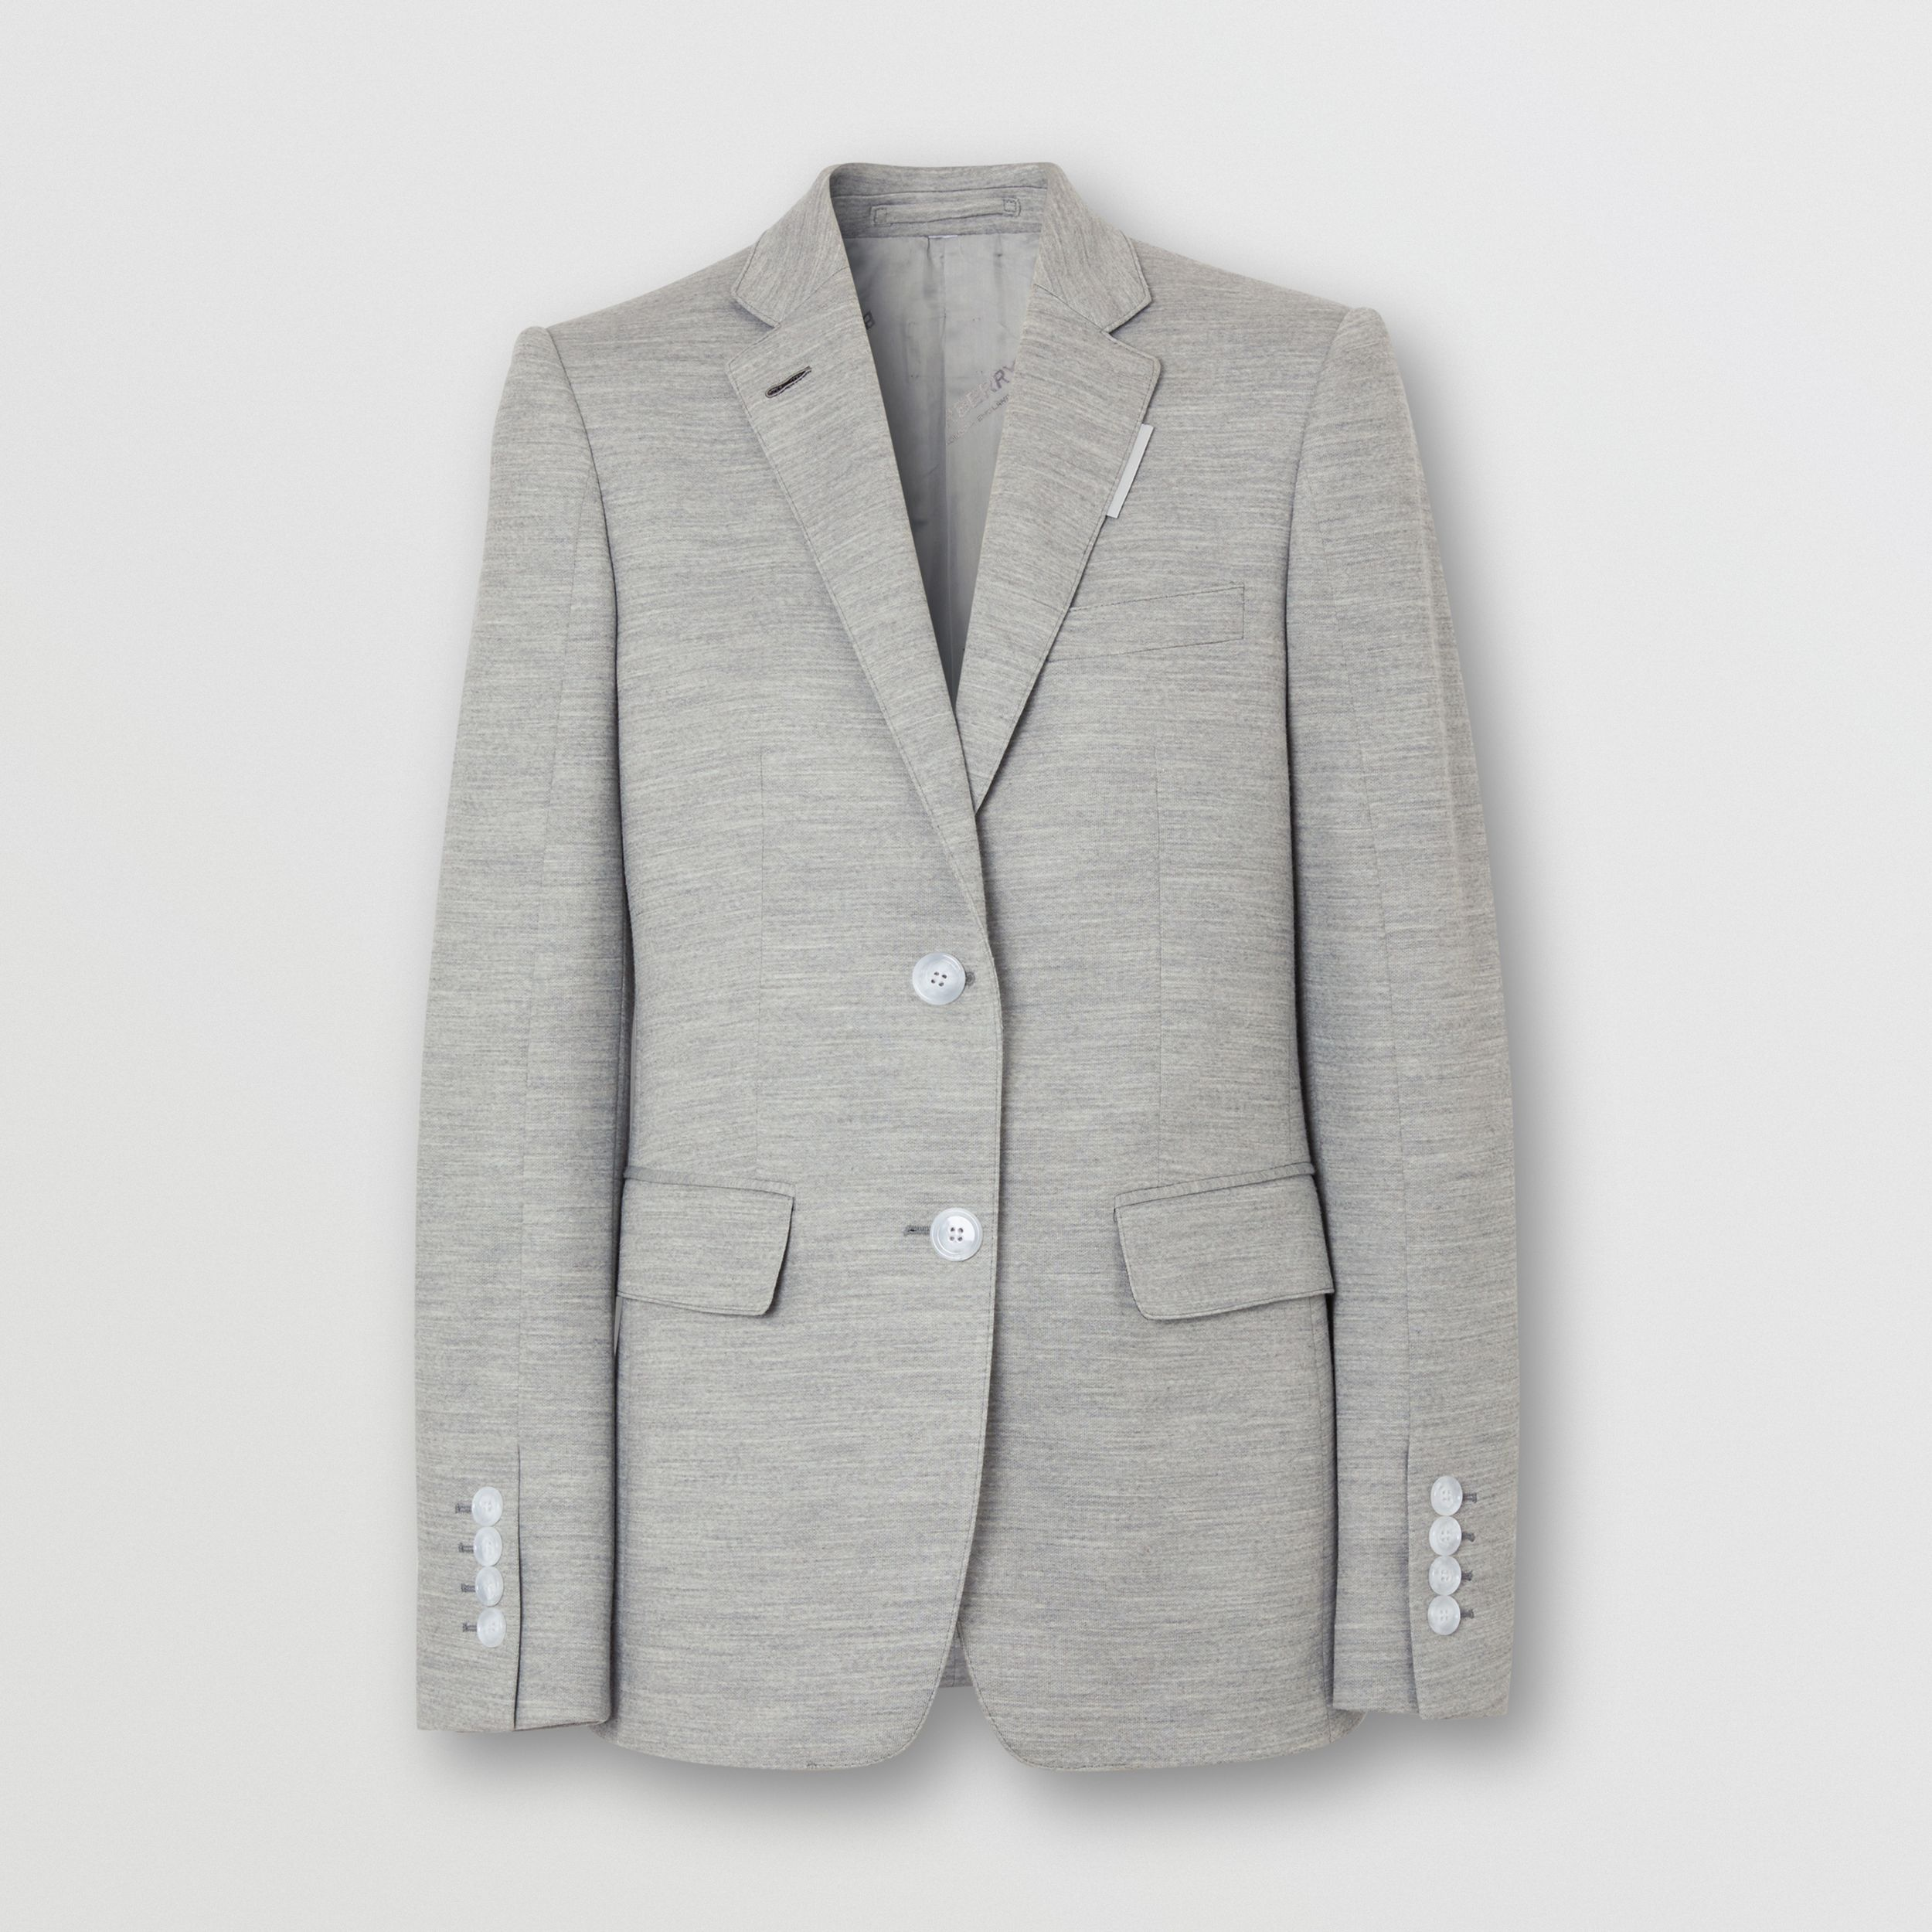 Technical Wool Jersey Blazer in Grey Taupe Melange - Women | Burberry - 4